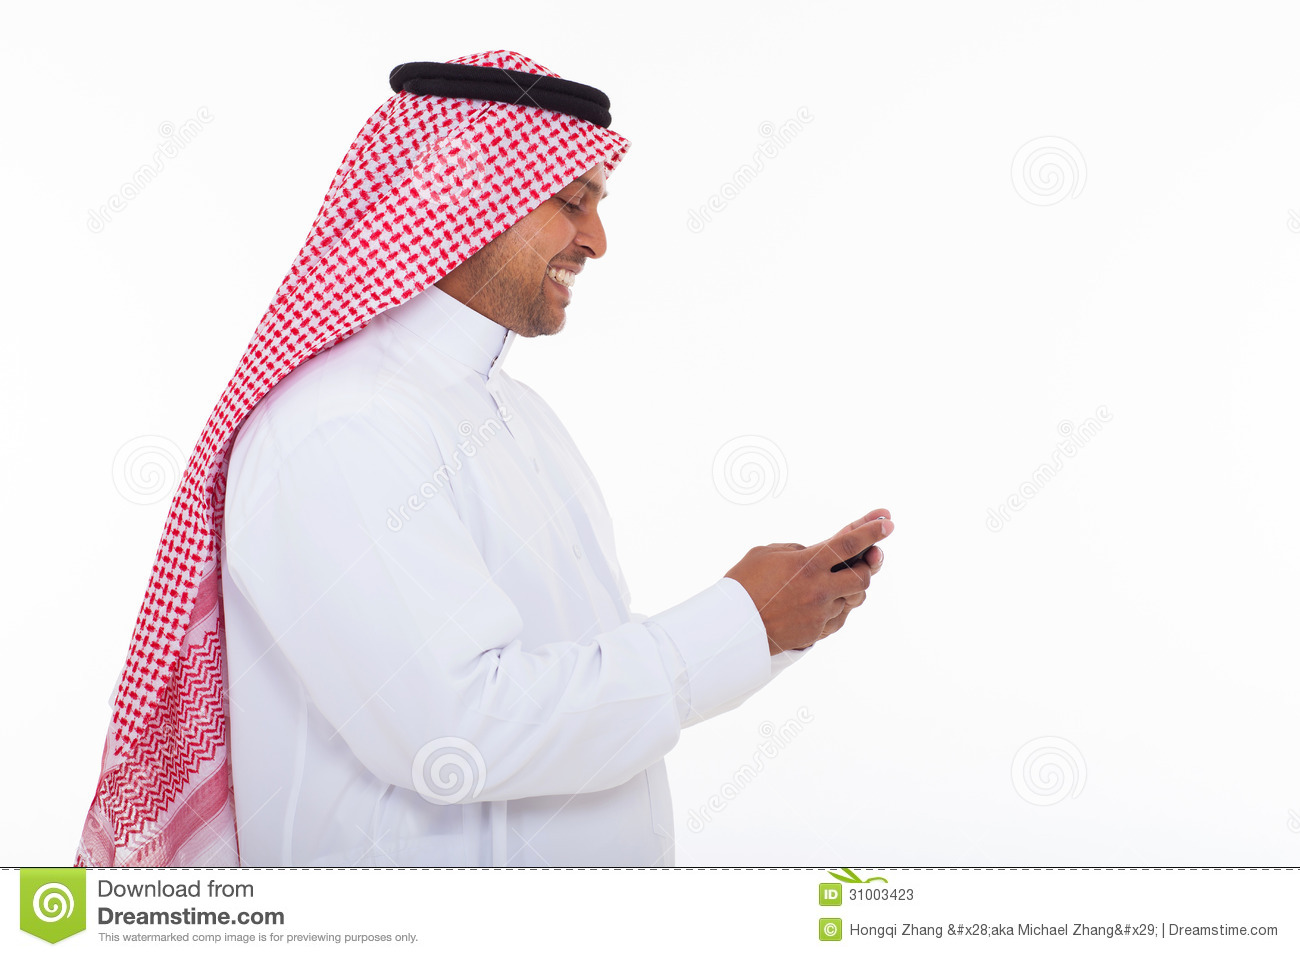 Folded Business Cards >> Muslim Man Cell Phone Stock Photos - Image: 31003423